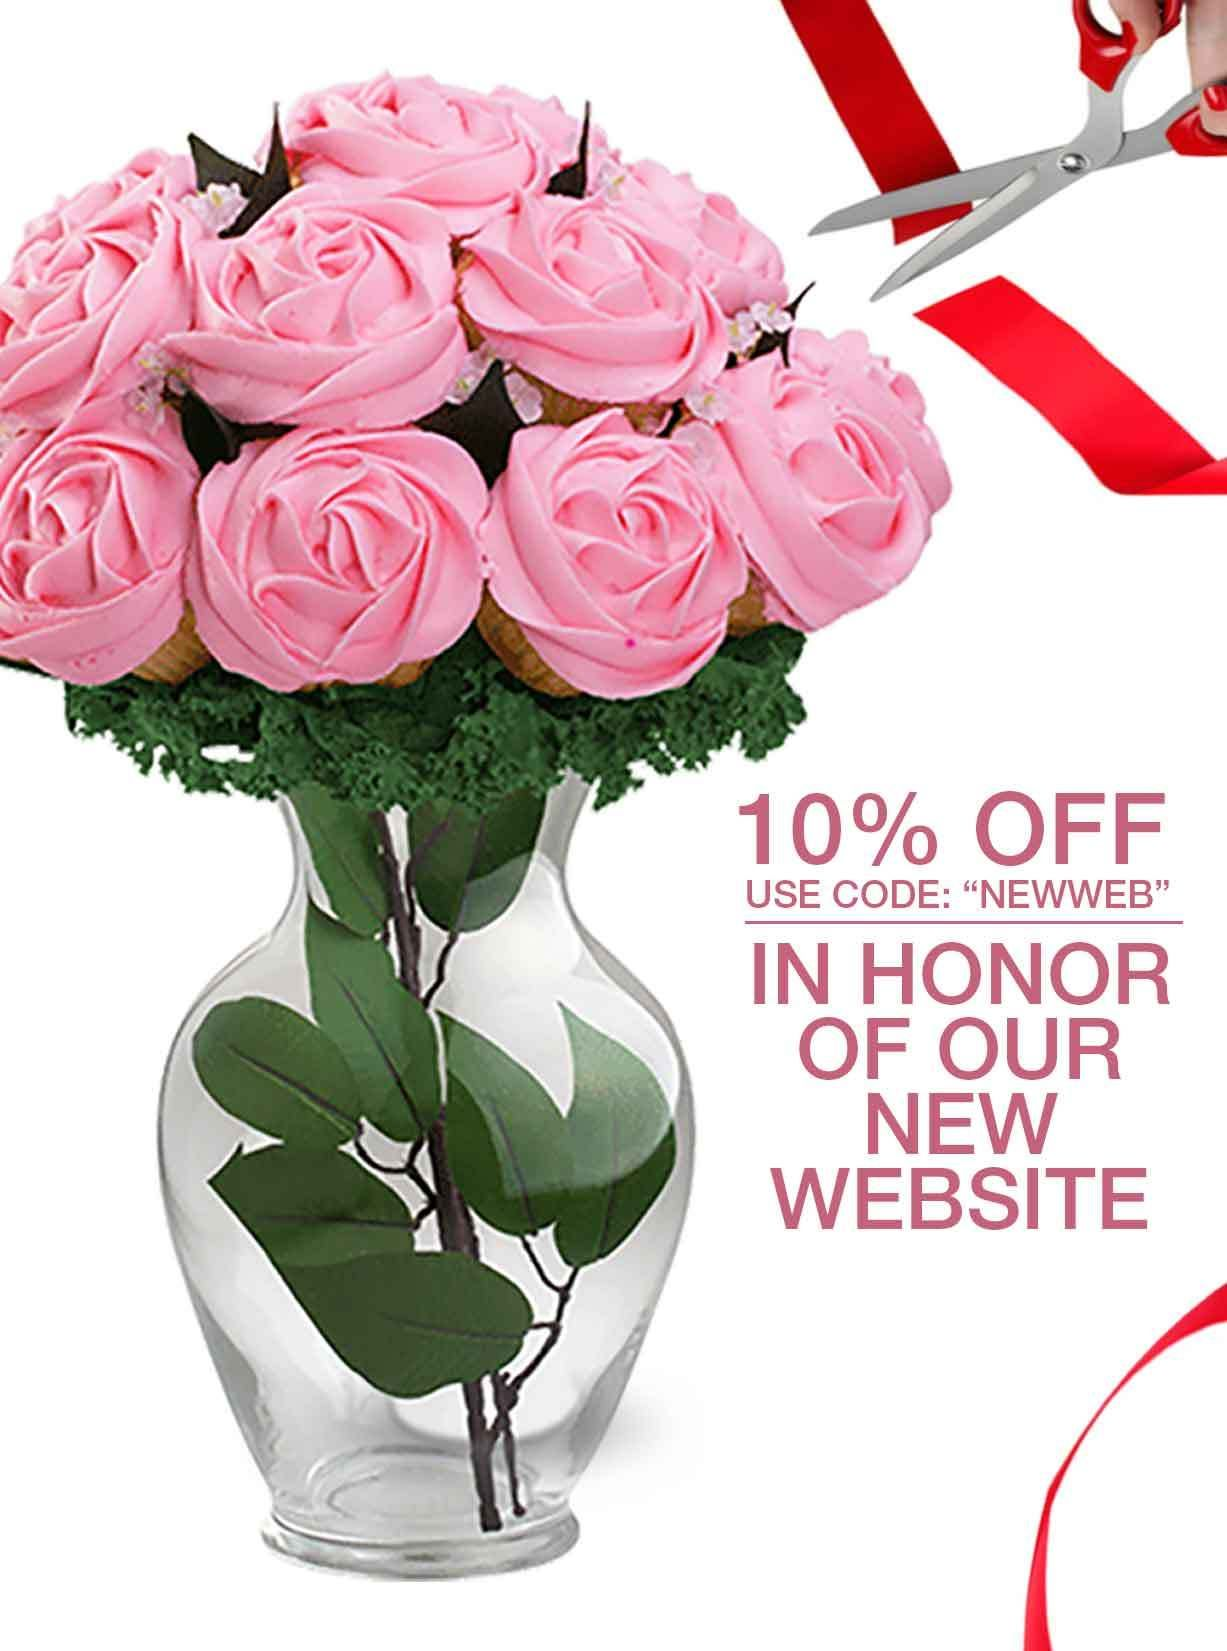 Flower cupcake bouquets for delivery cupcake bouquet flower cupcake bouquets for delivery izmirmasajfo Choice Image